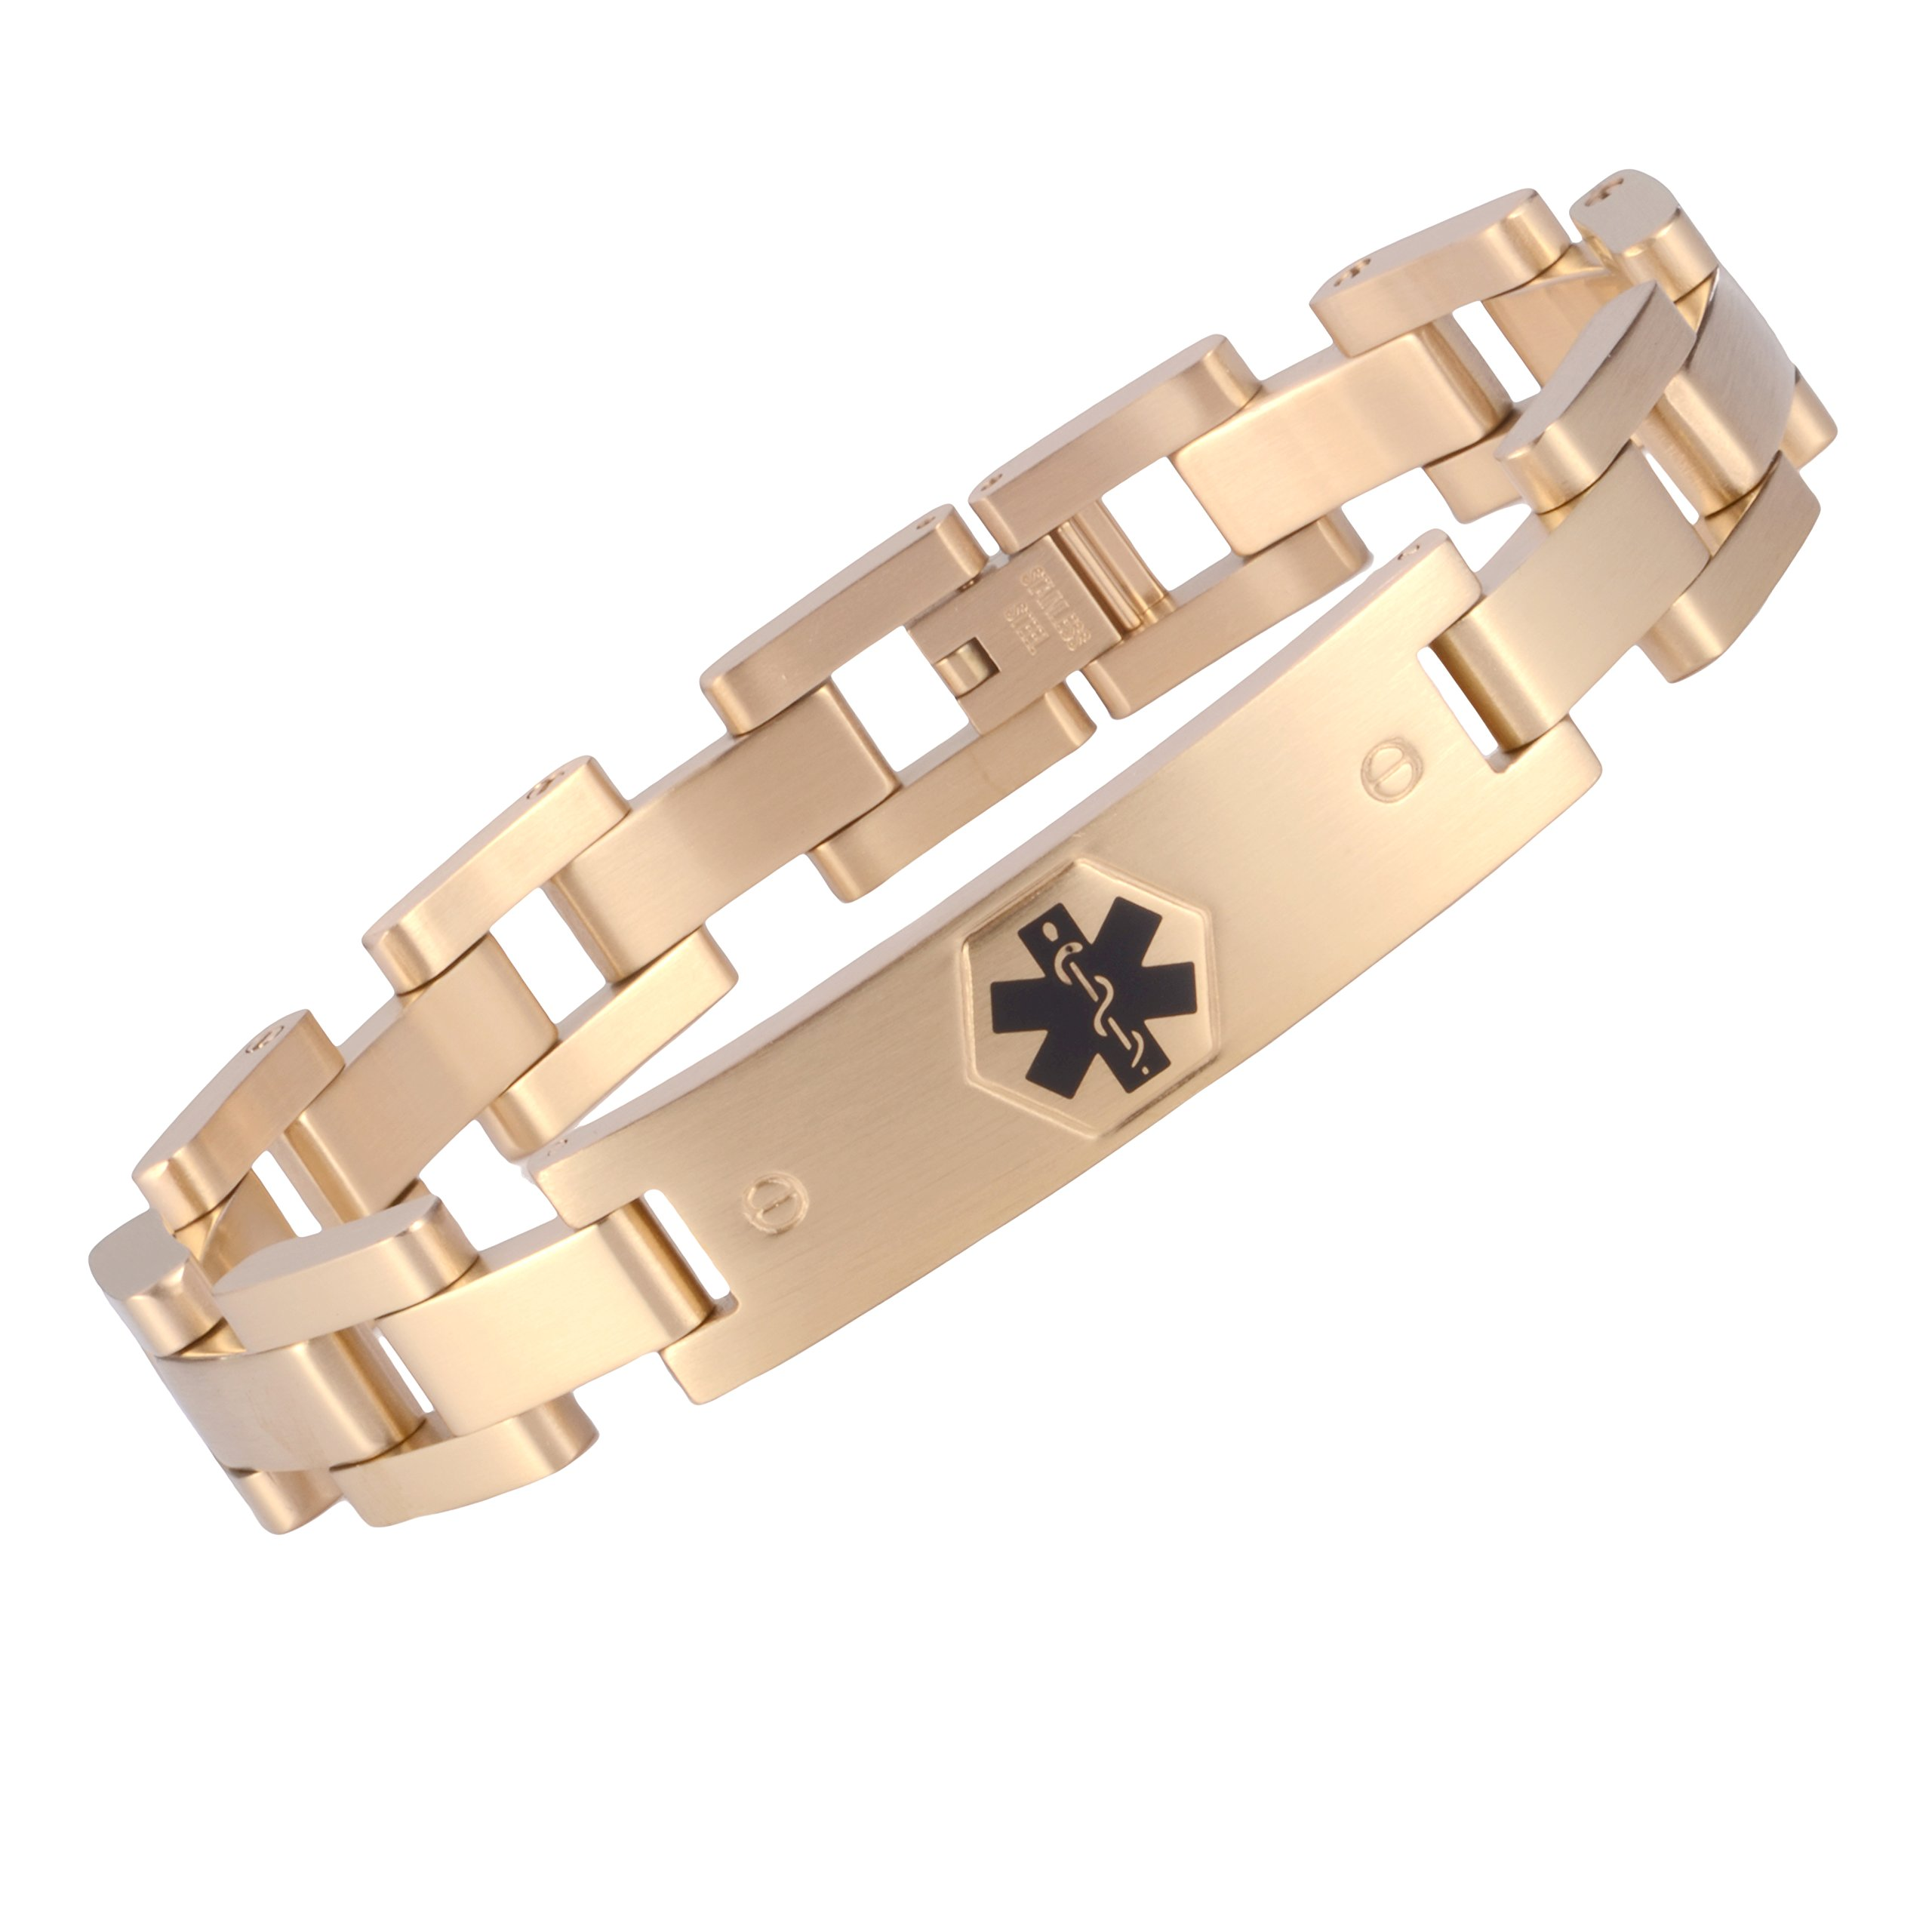 Tarring The military style medical id bracelet jewelry for men and women(GOLD)(7.0)